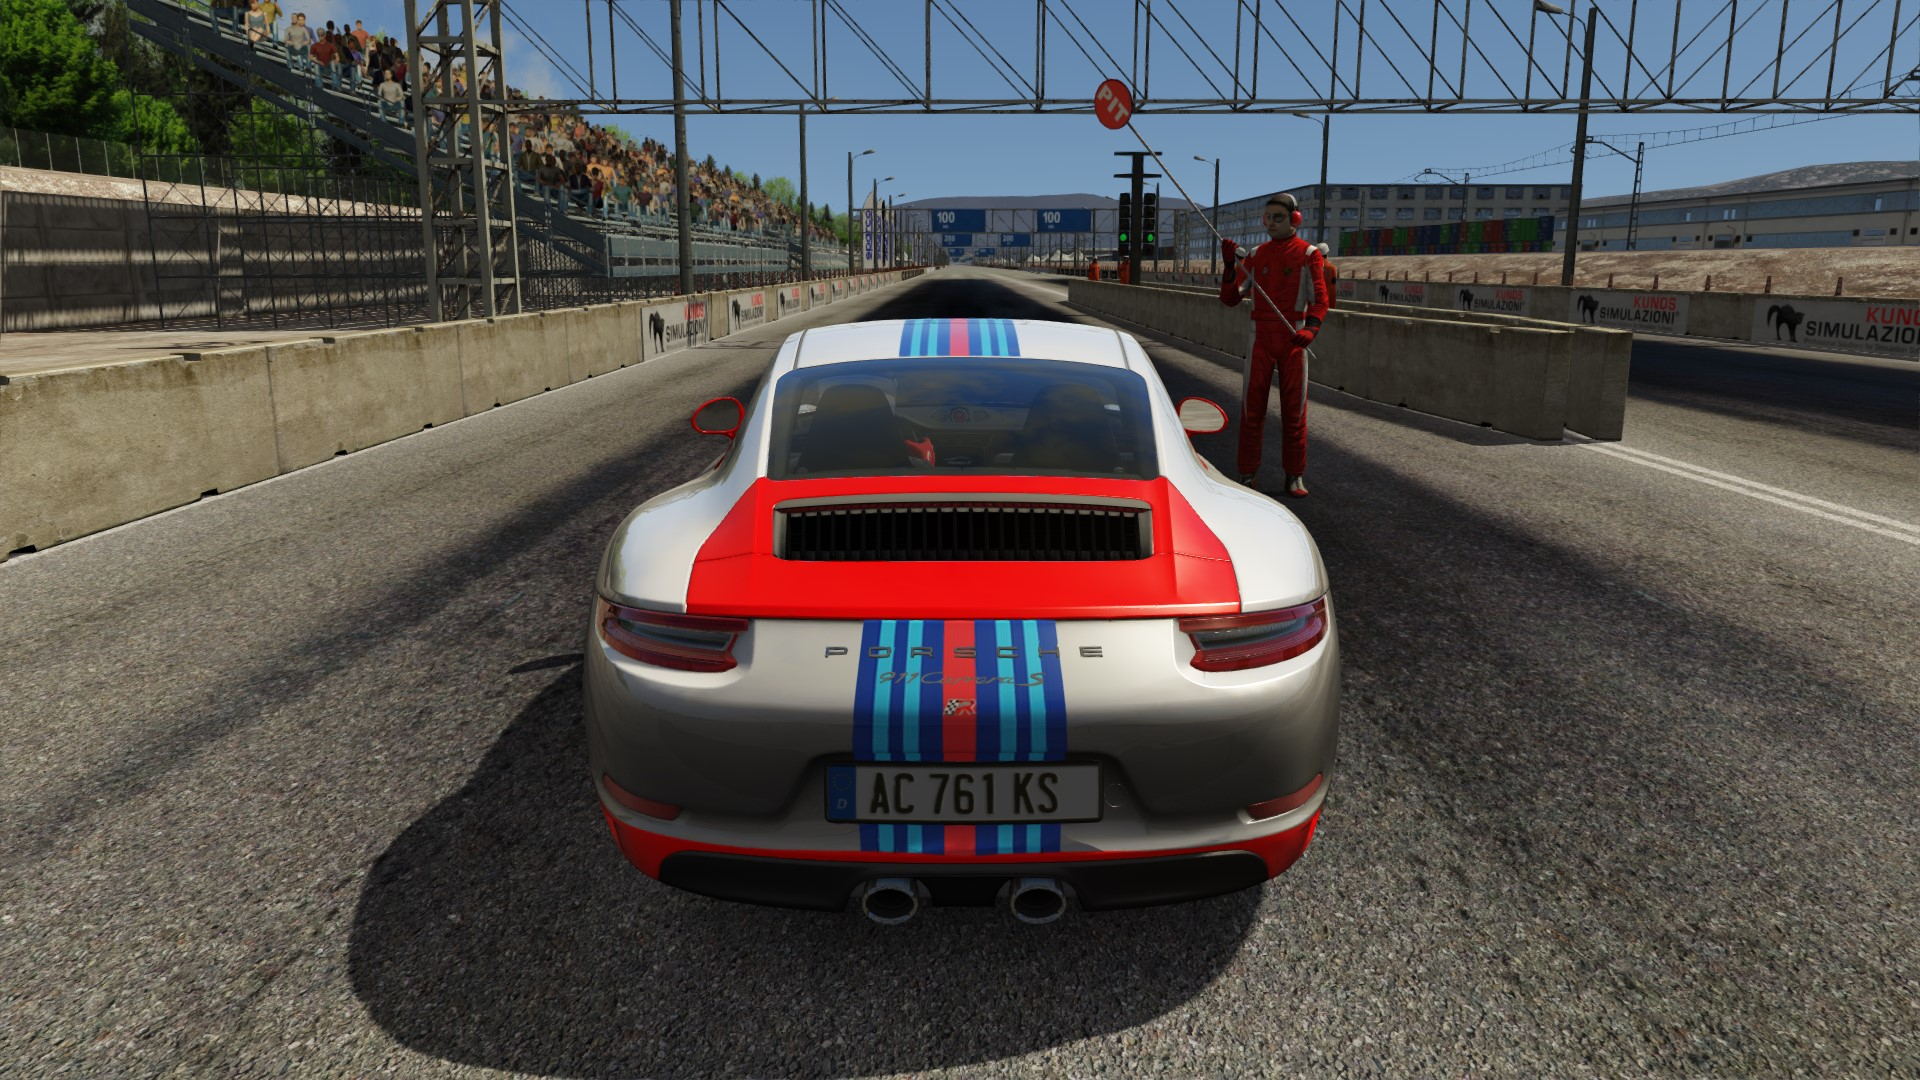 Screenshot_ks_porsche_991_carrera_s_ks_drag_27-2-117-11-31-29.jpg